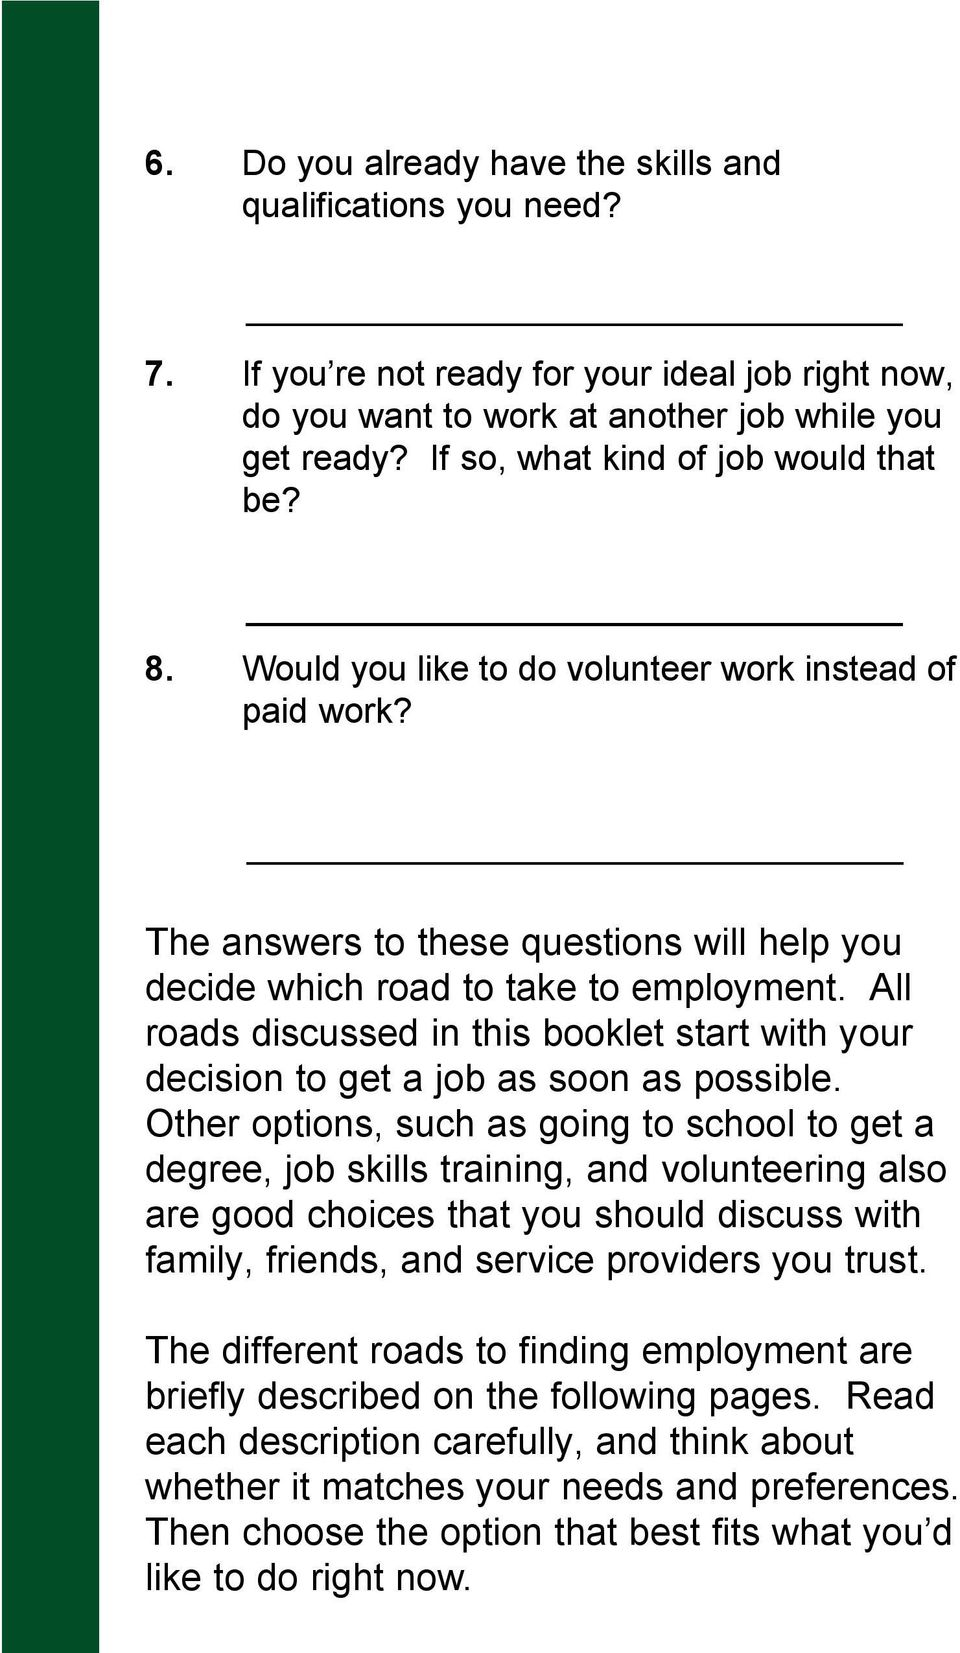 All roads discussed in this booklet start with your decision to get a job as soon as possible.